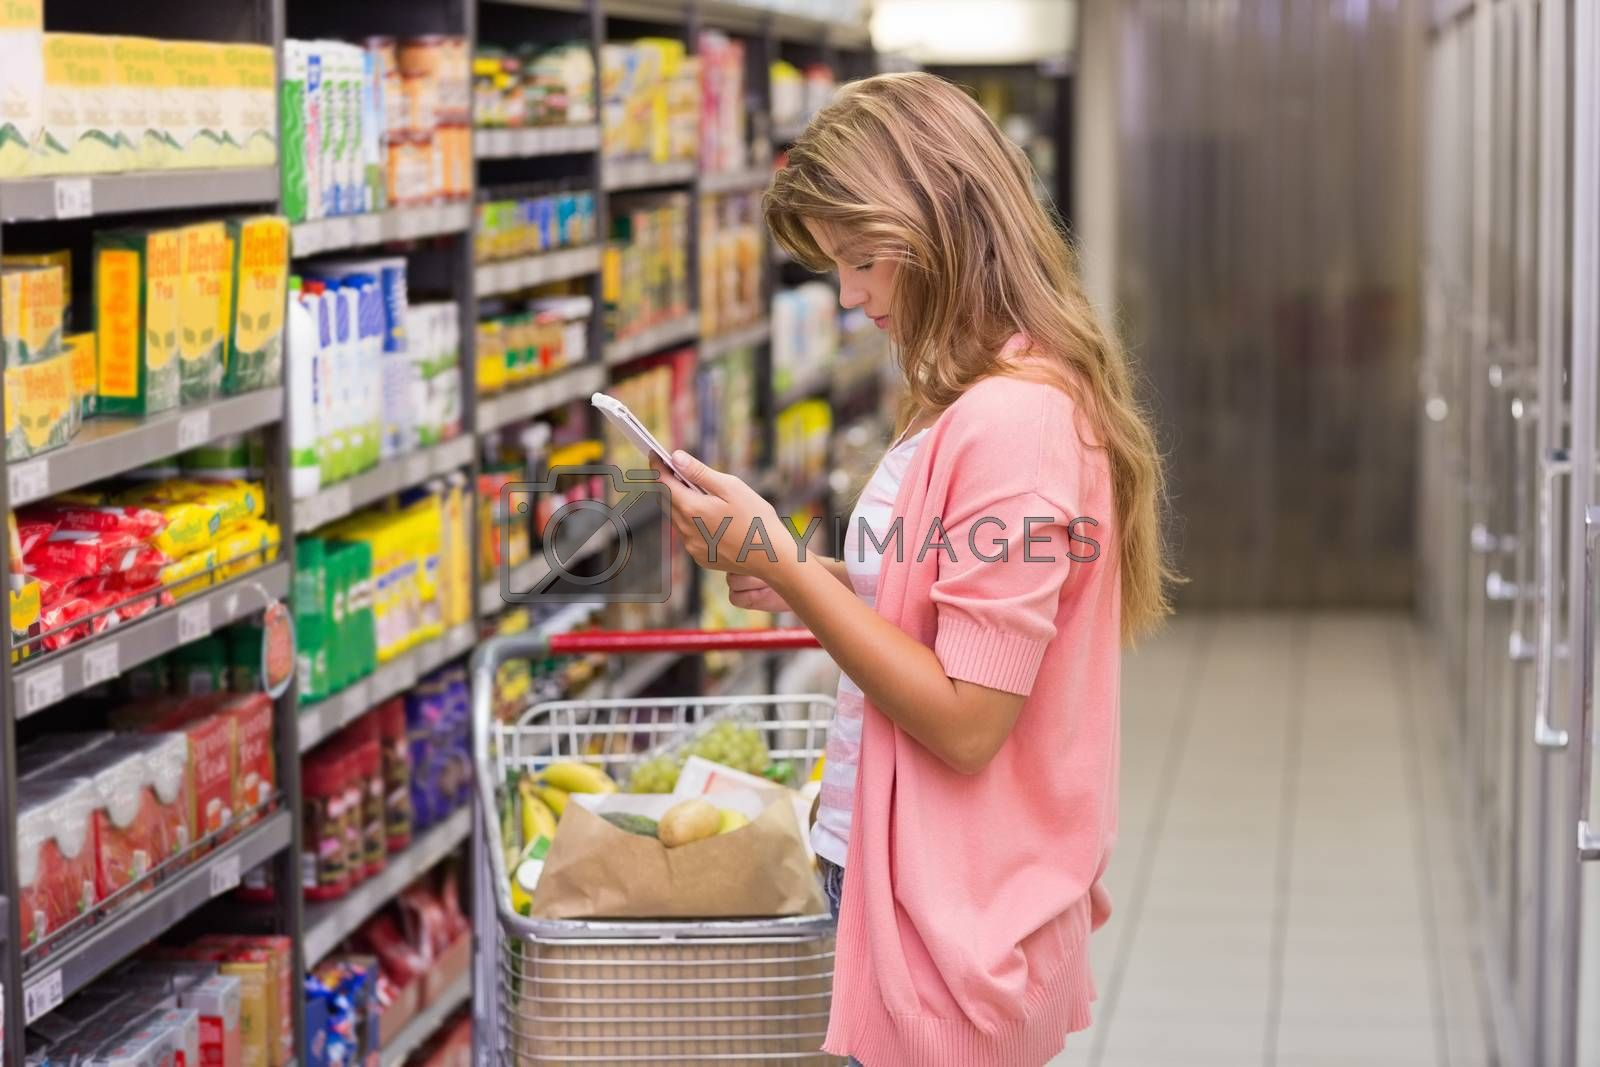 Royalty free image of Pretty blonde woman looking at a product  by Wavebreakmedia